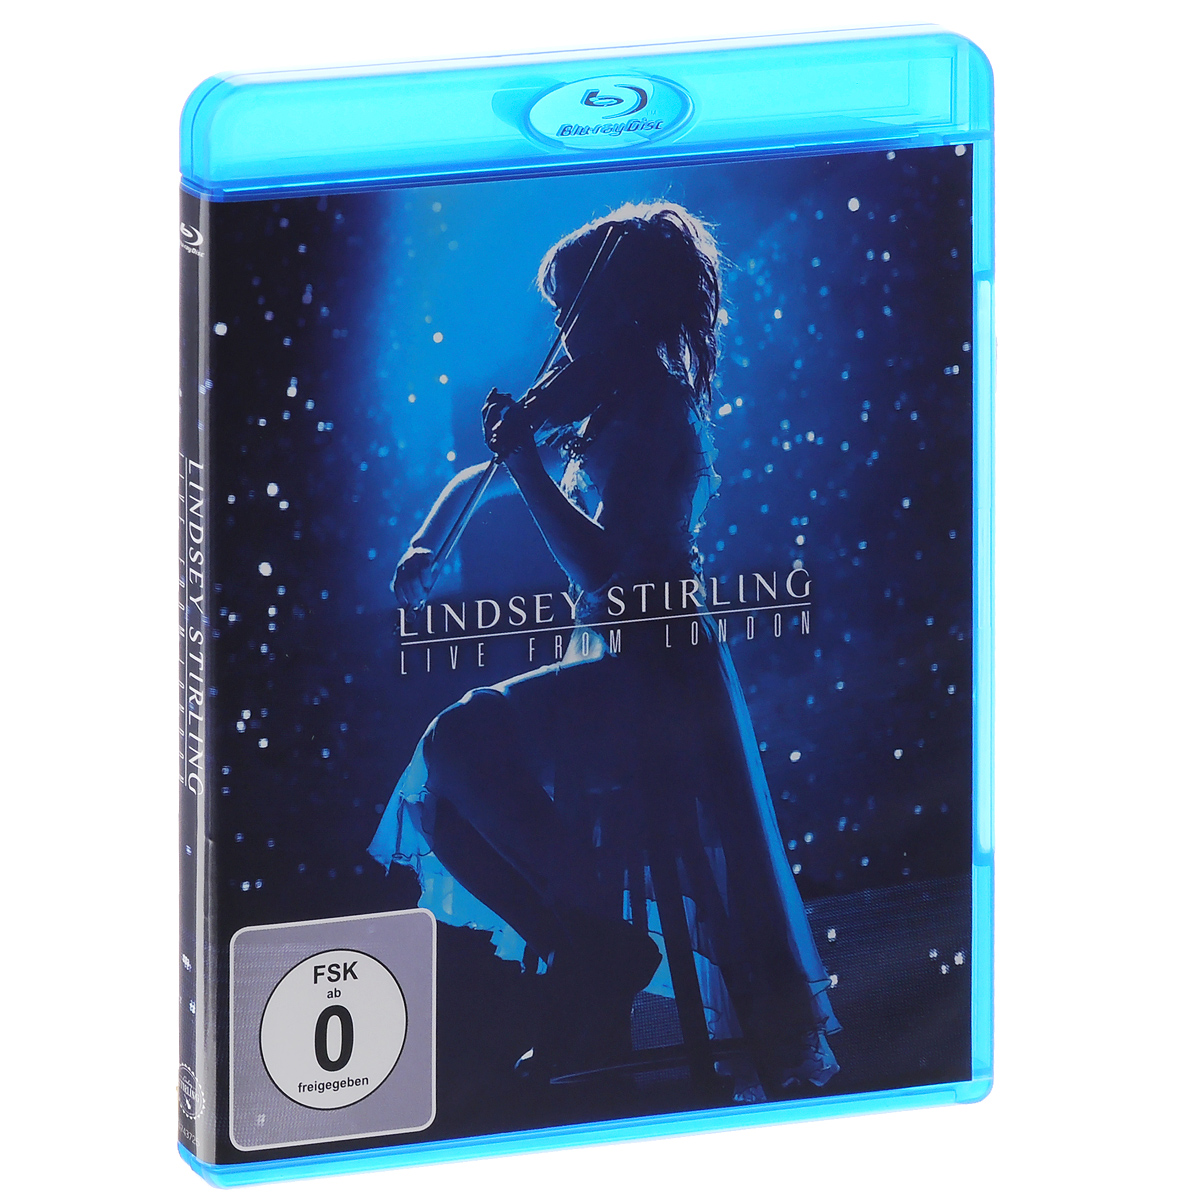 Lindsey Stirling: Live From London (Blu-ray) сандалии nobbaro сандали